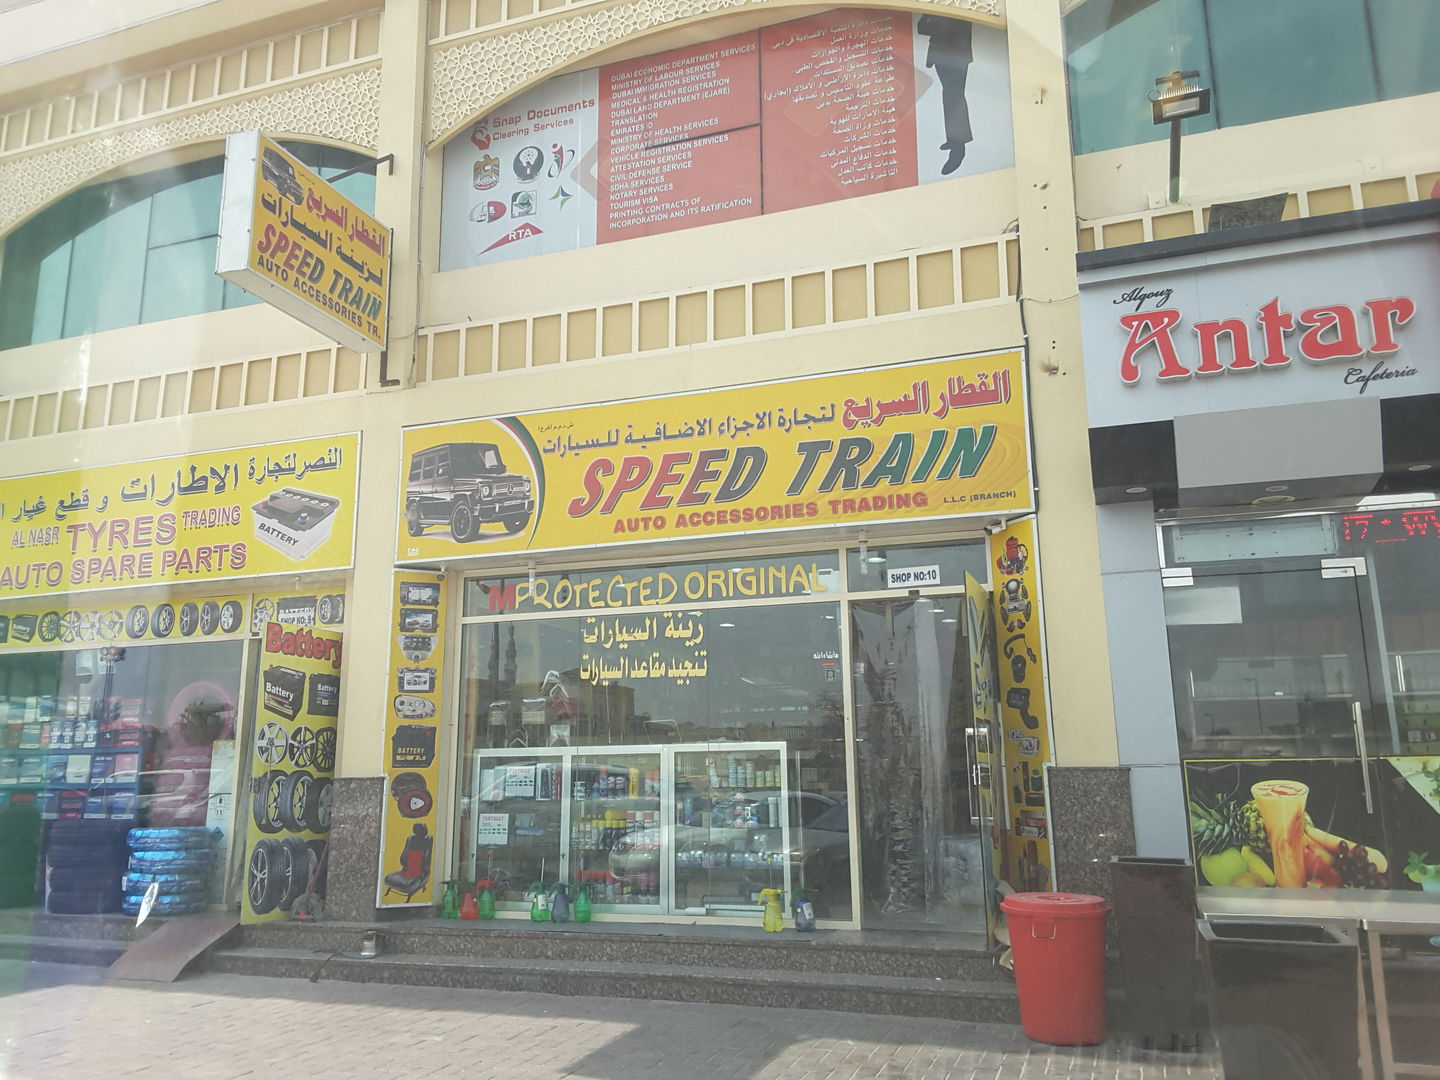 HiDubai-business-speed-train-auto-accessories-trading-transport-vehicle-services-auto-spare-parts-accessories-al-quoz-1-dubai-2